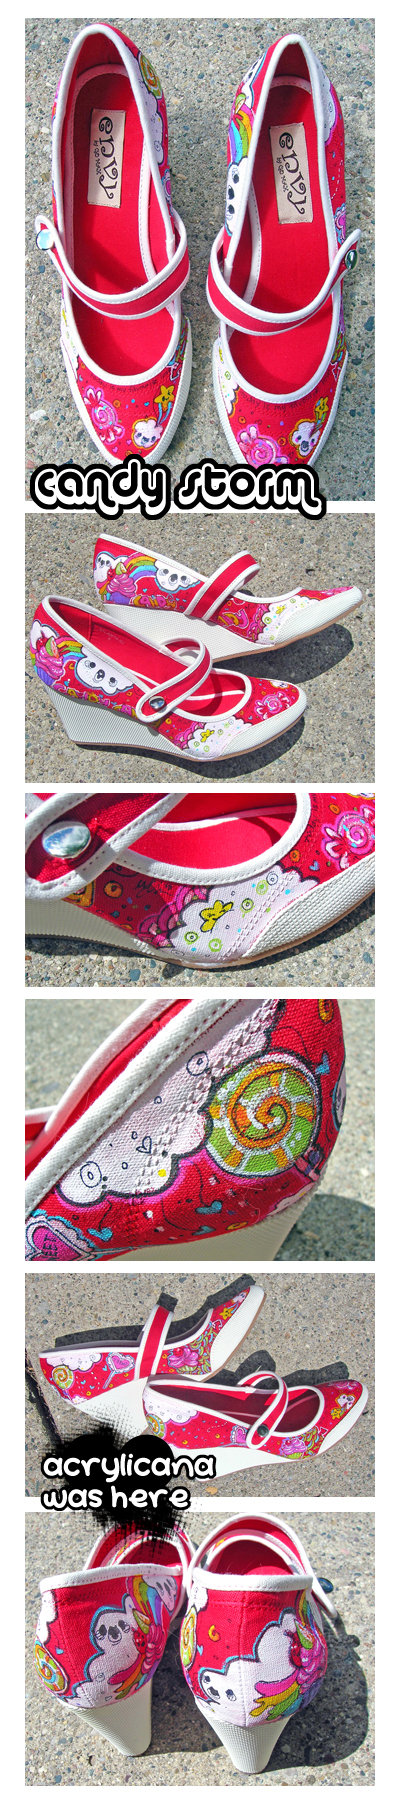 Candy Storm Shoes by marywinkler